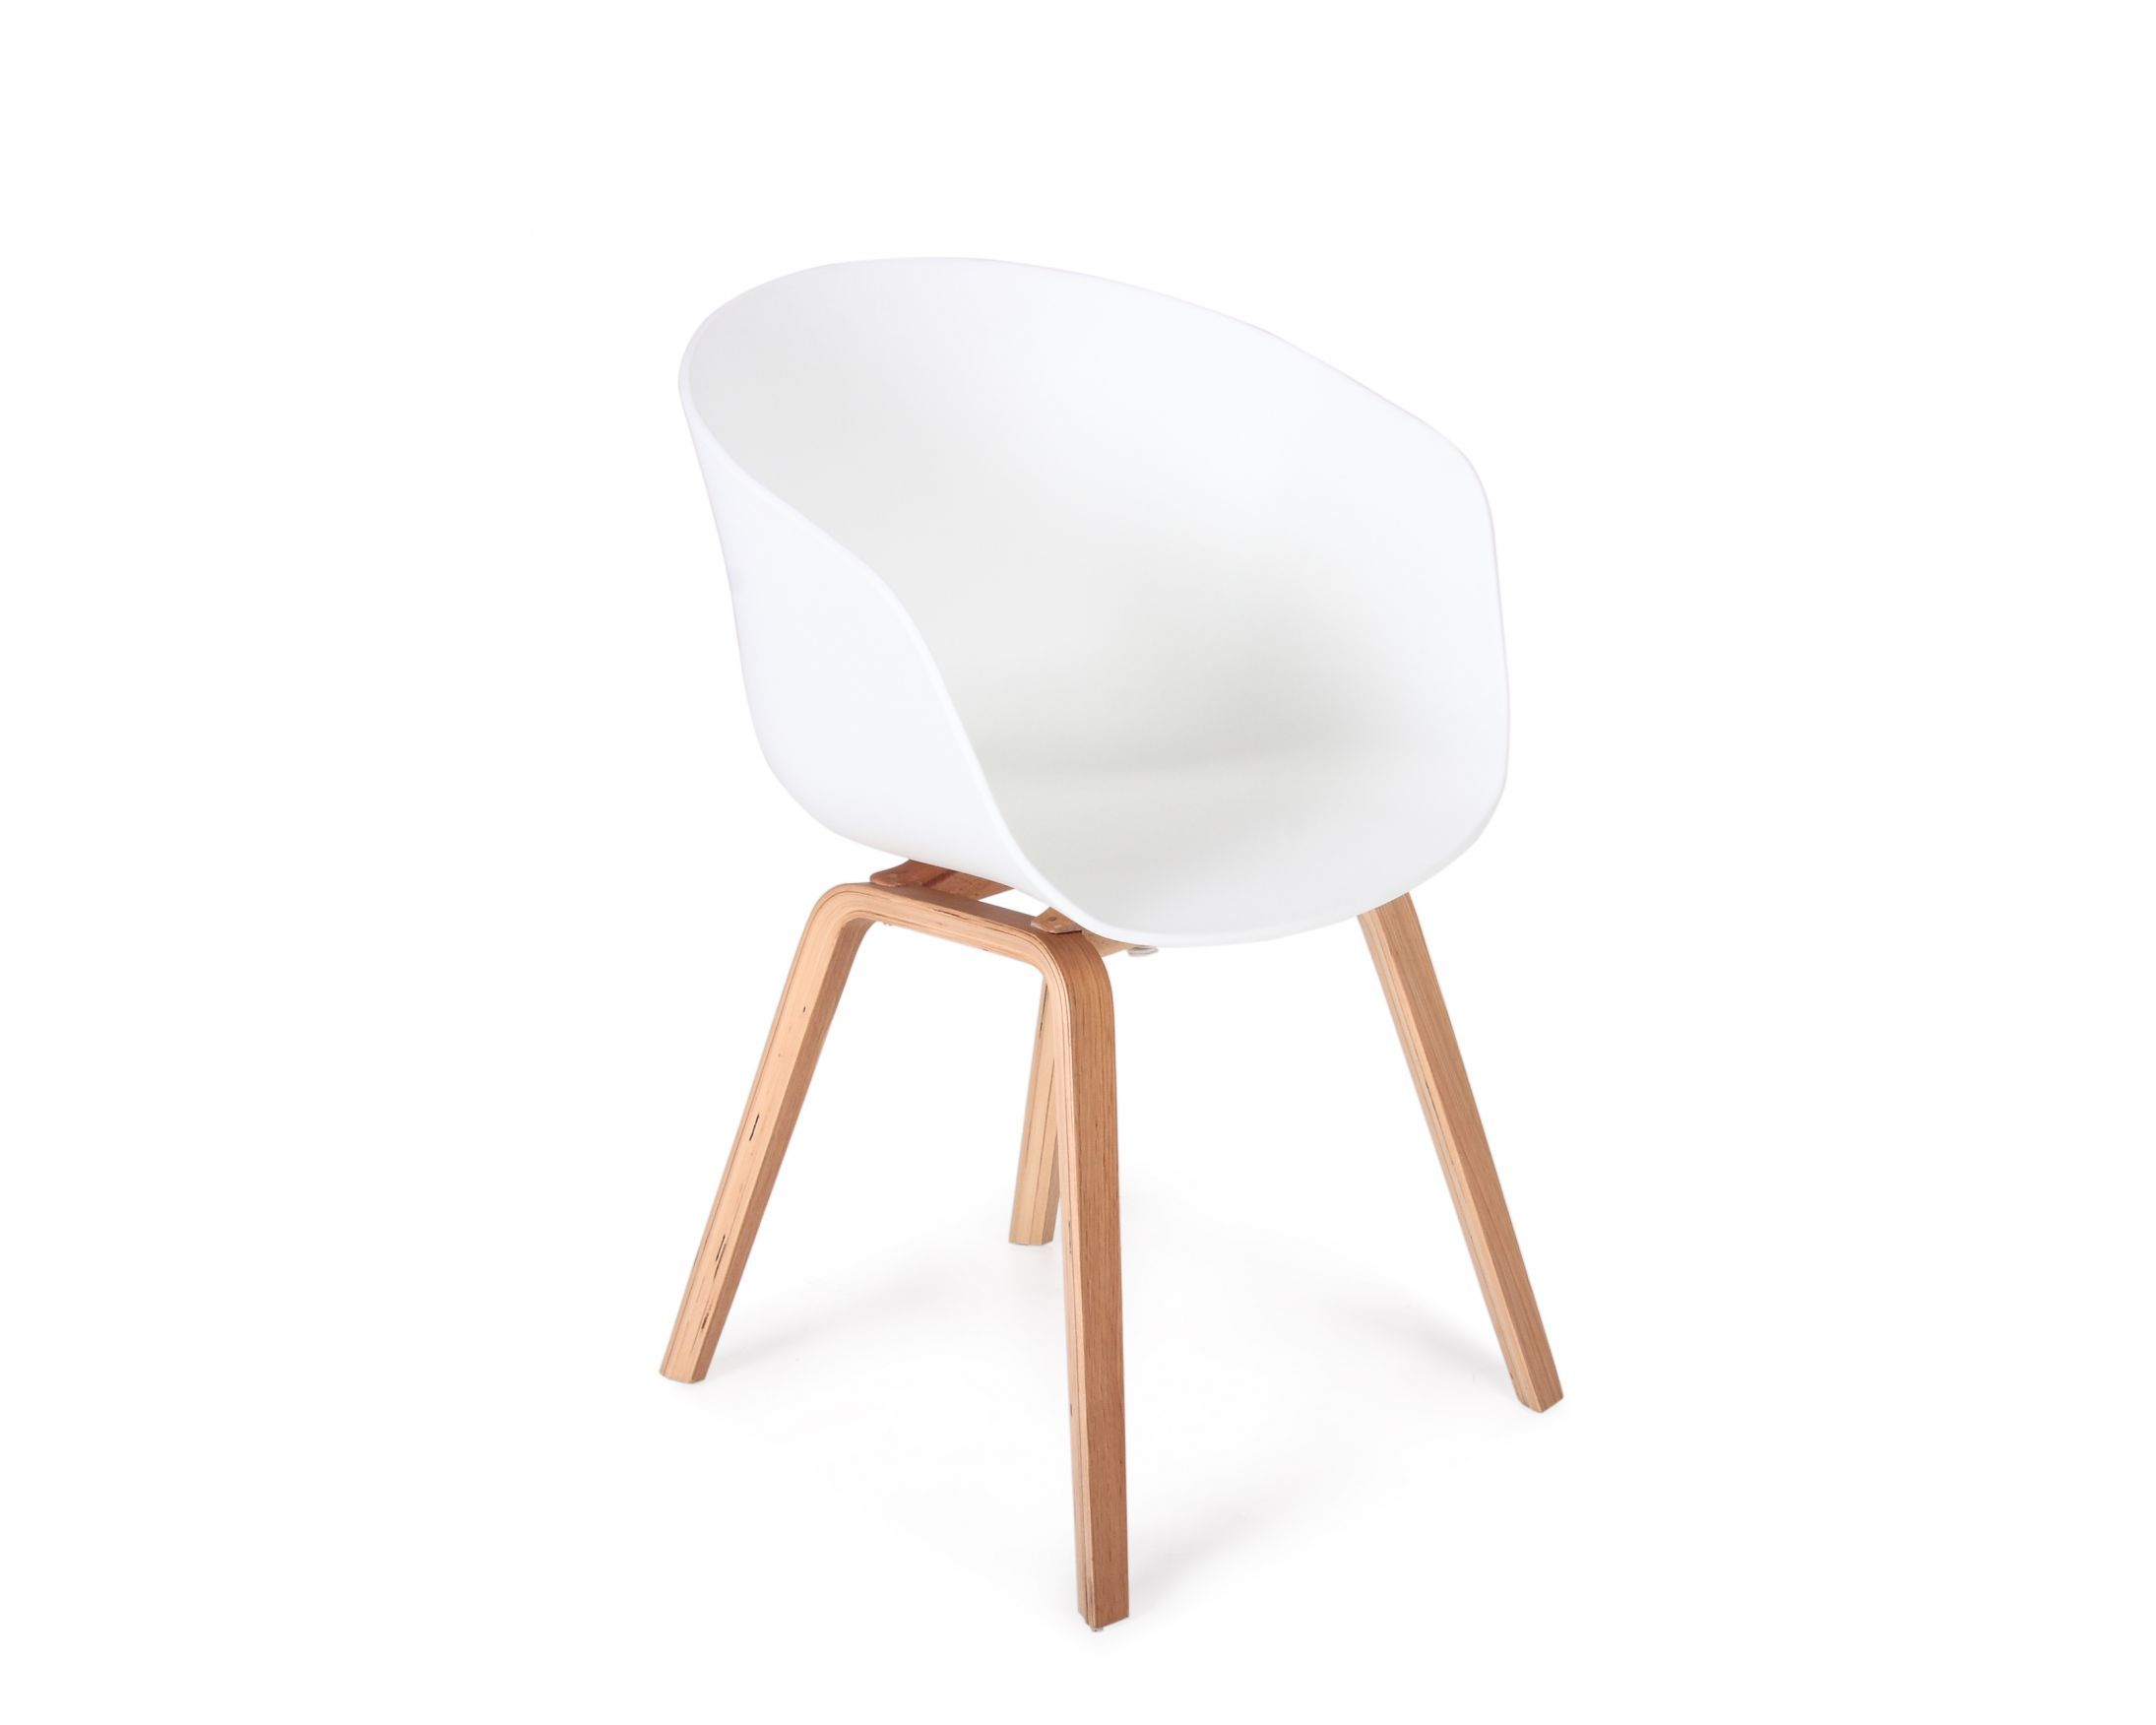 office chair conference dining scandinavian design aac22. the hay chair is a premium reproduction of original about aac22 by office conference dining scandinavian design aac22 c